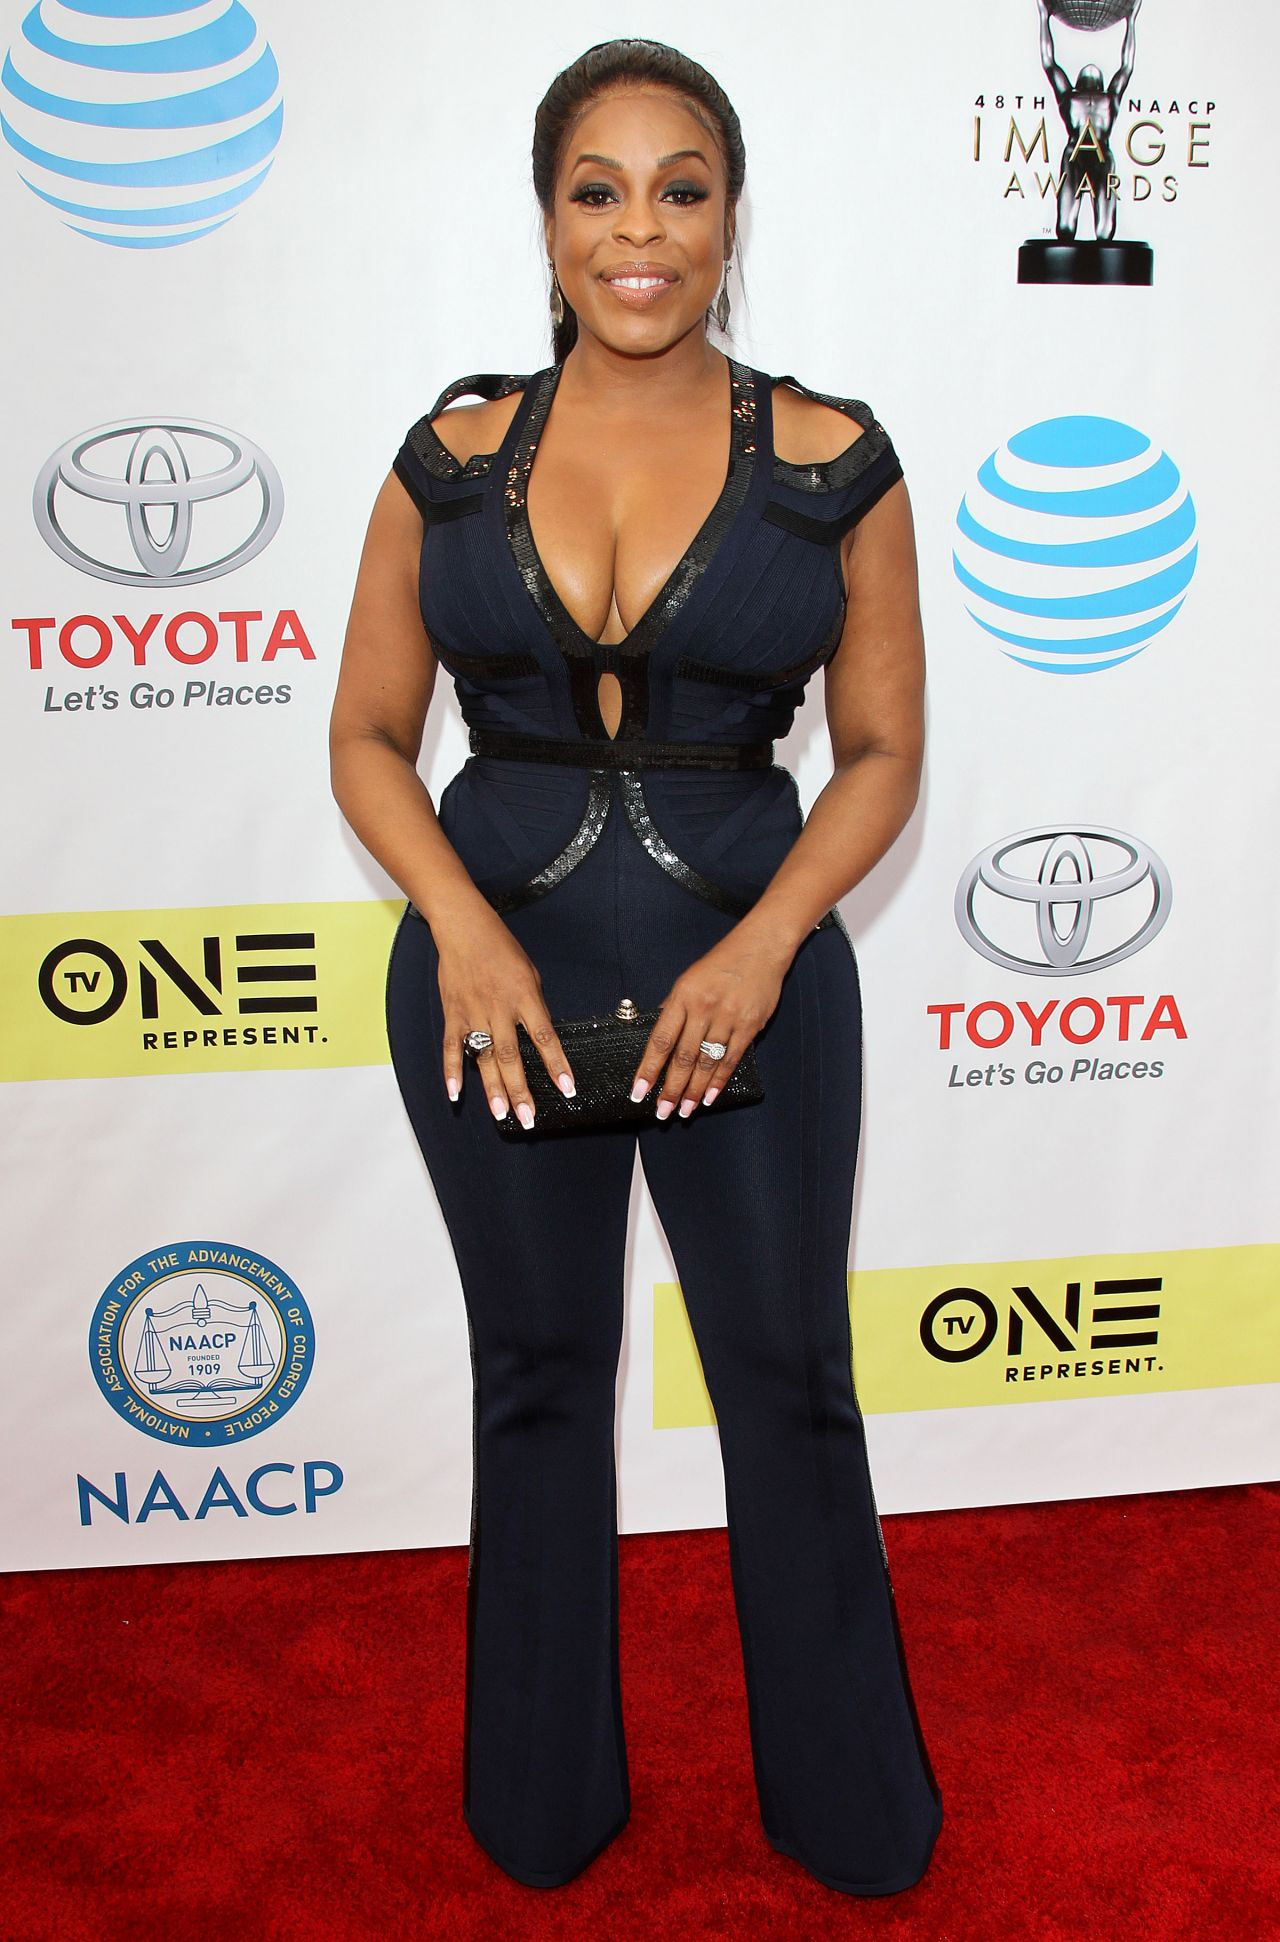 Niecy Nash at 48th NAACP Image Awards in Los Angeles 2 11 2017